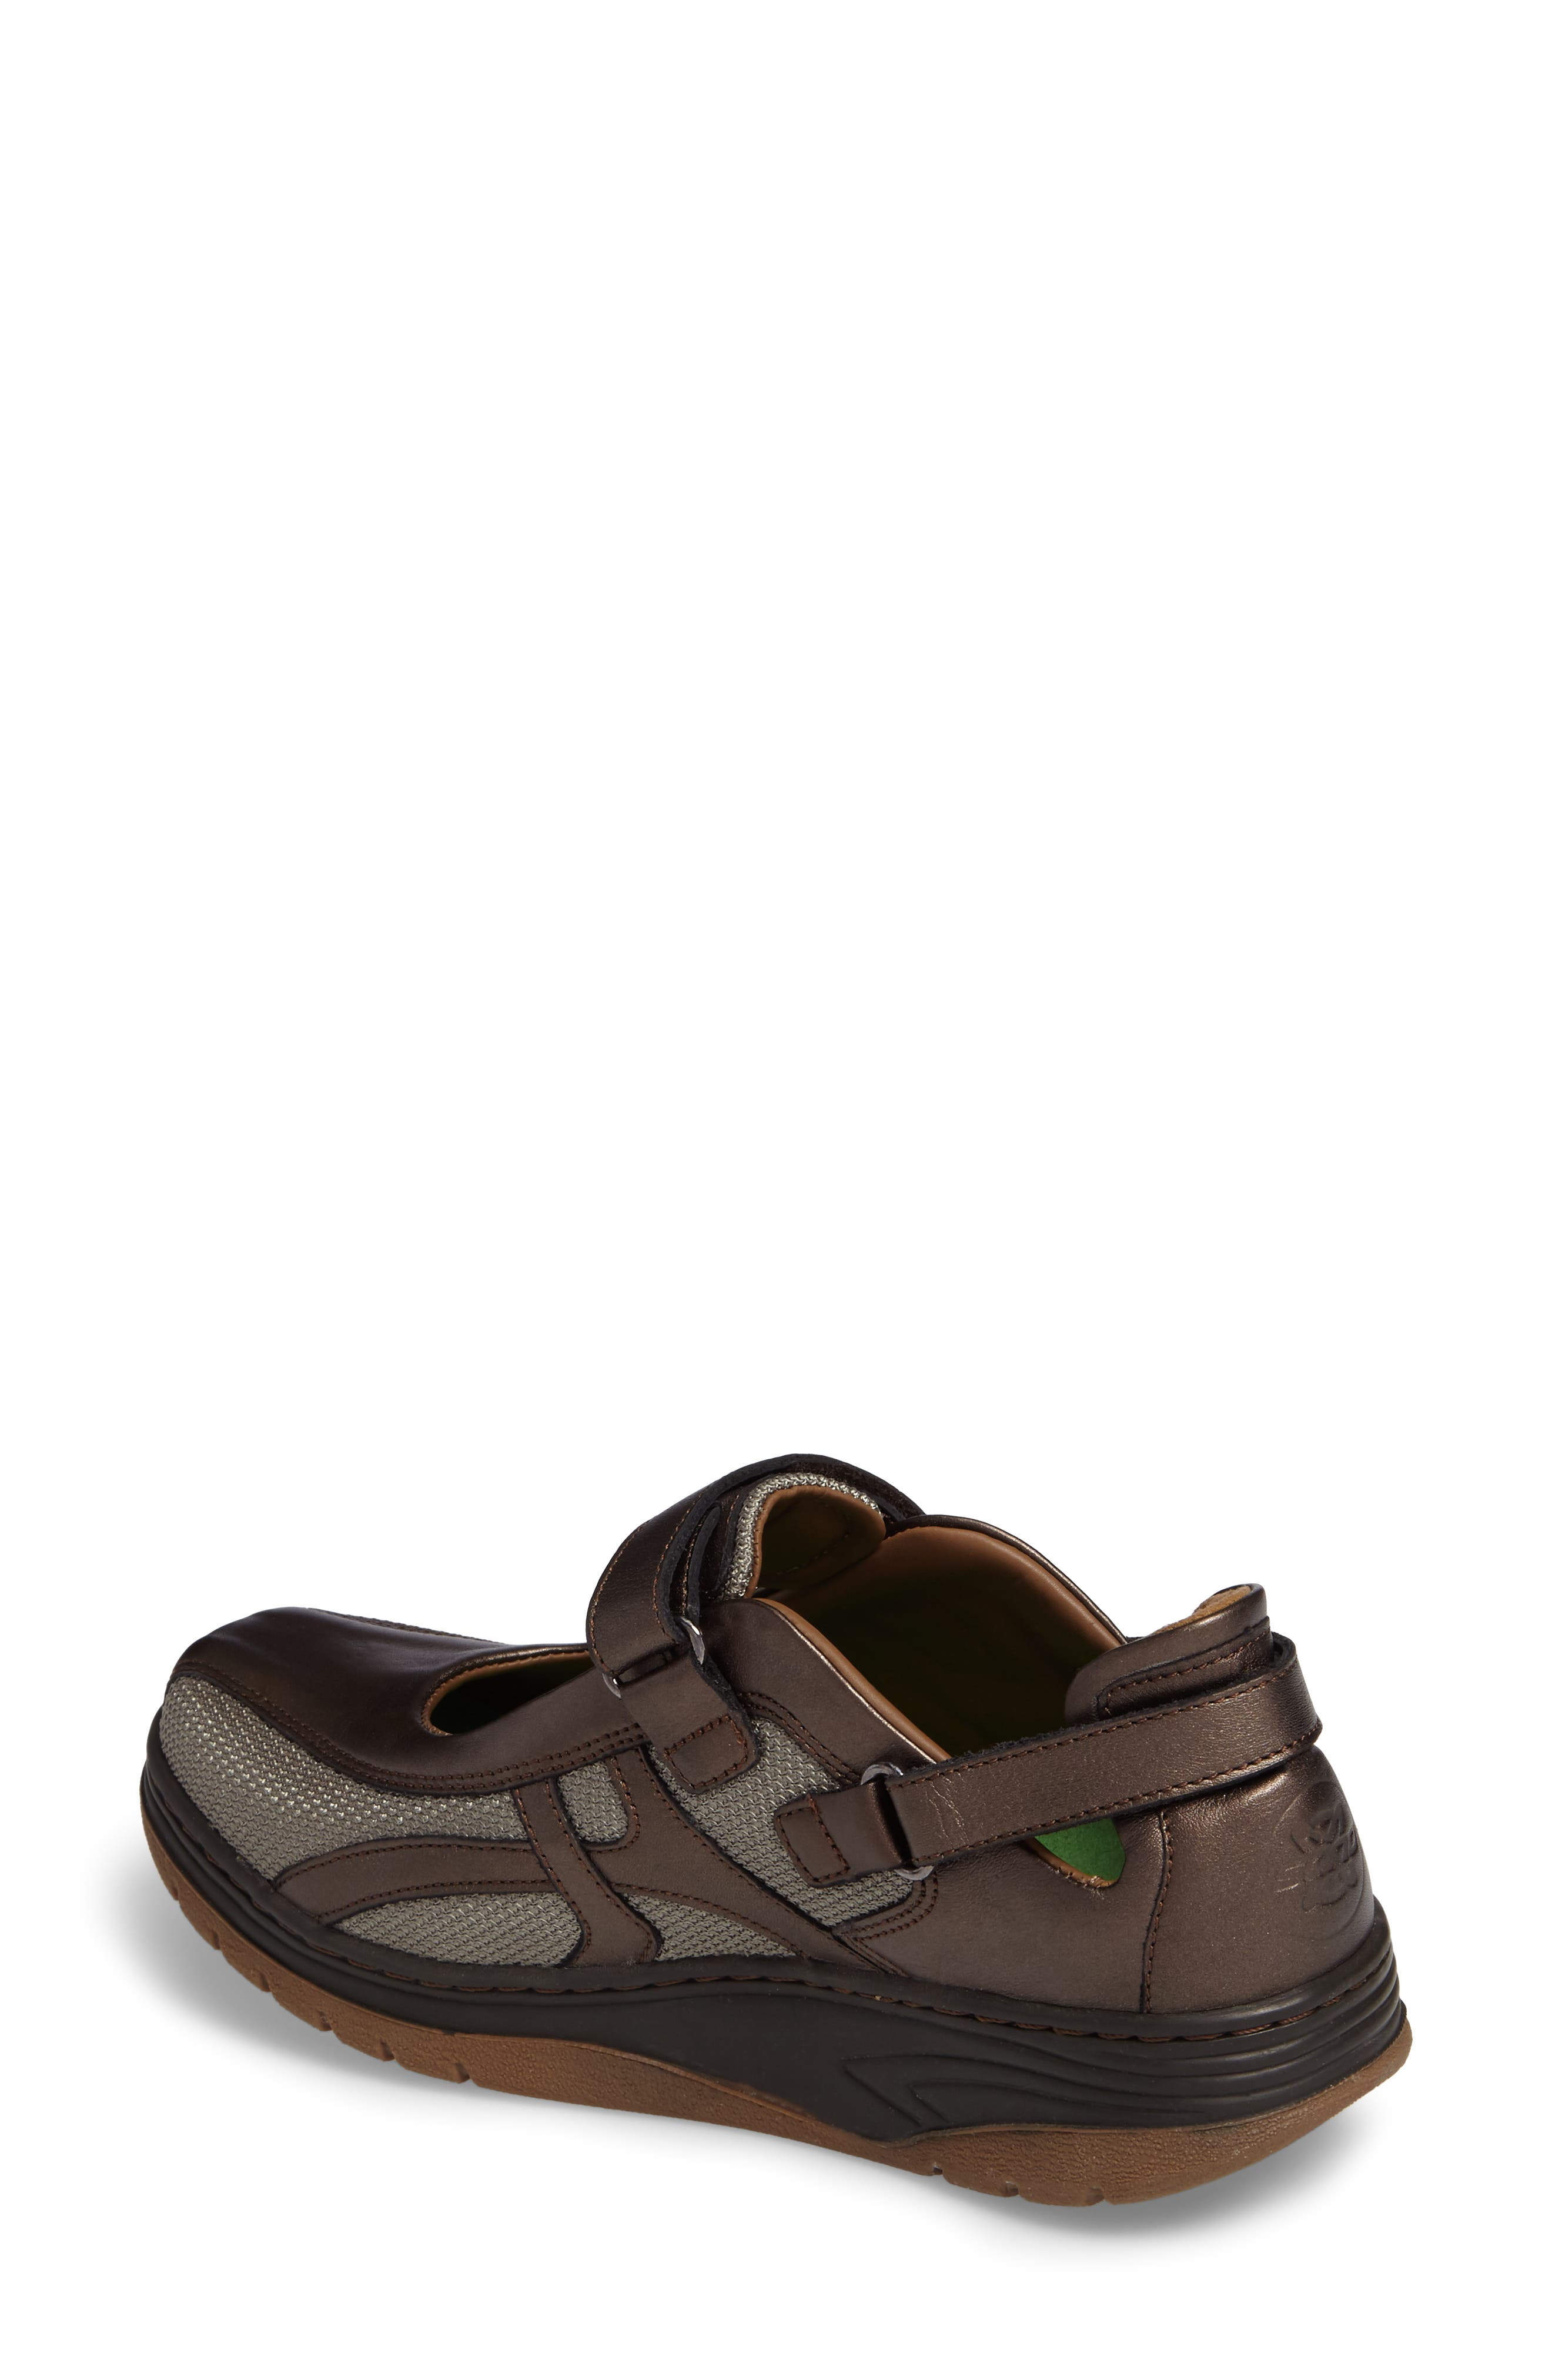 Sano by Mephisto 'Excess' Walking Shoe,                             Alternate thumbnail 8, color,